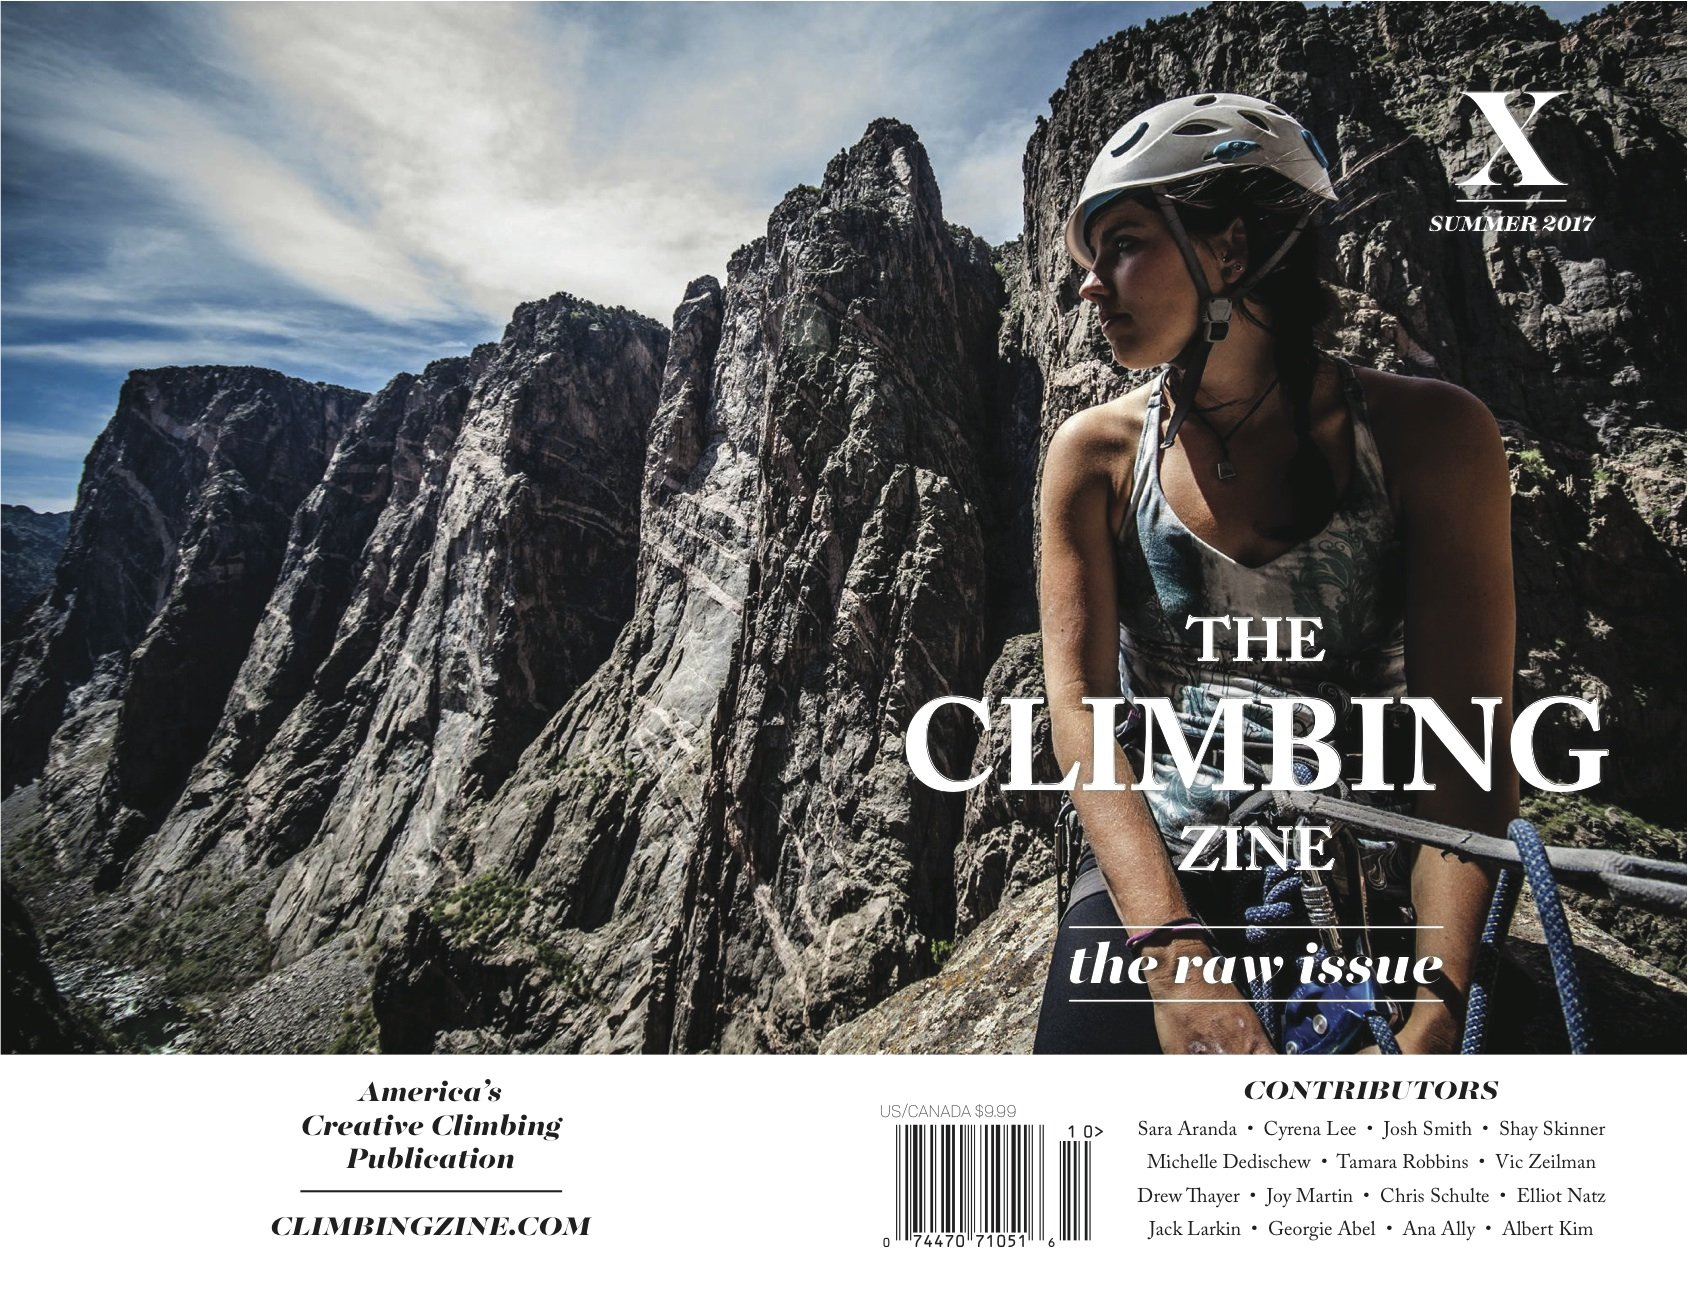 Image OfThe Climbing Zine Volume 10: The Raw Issue